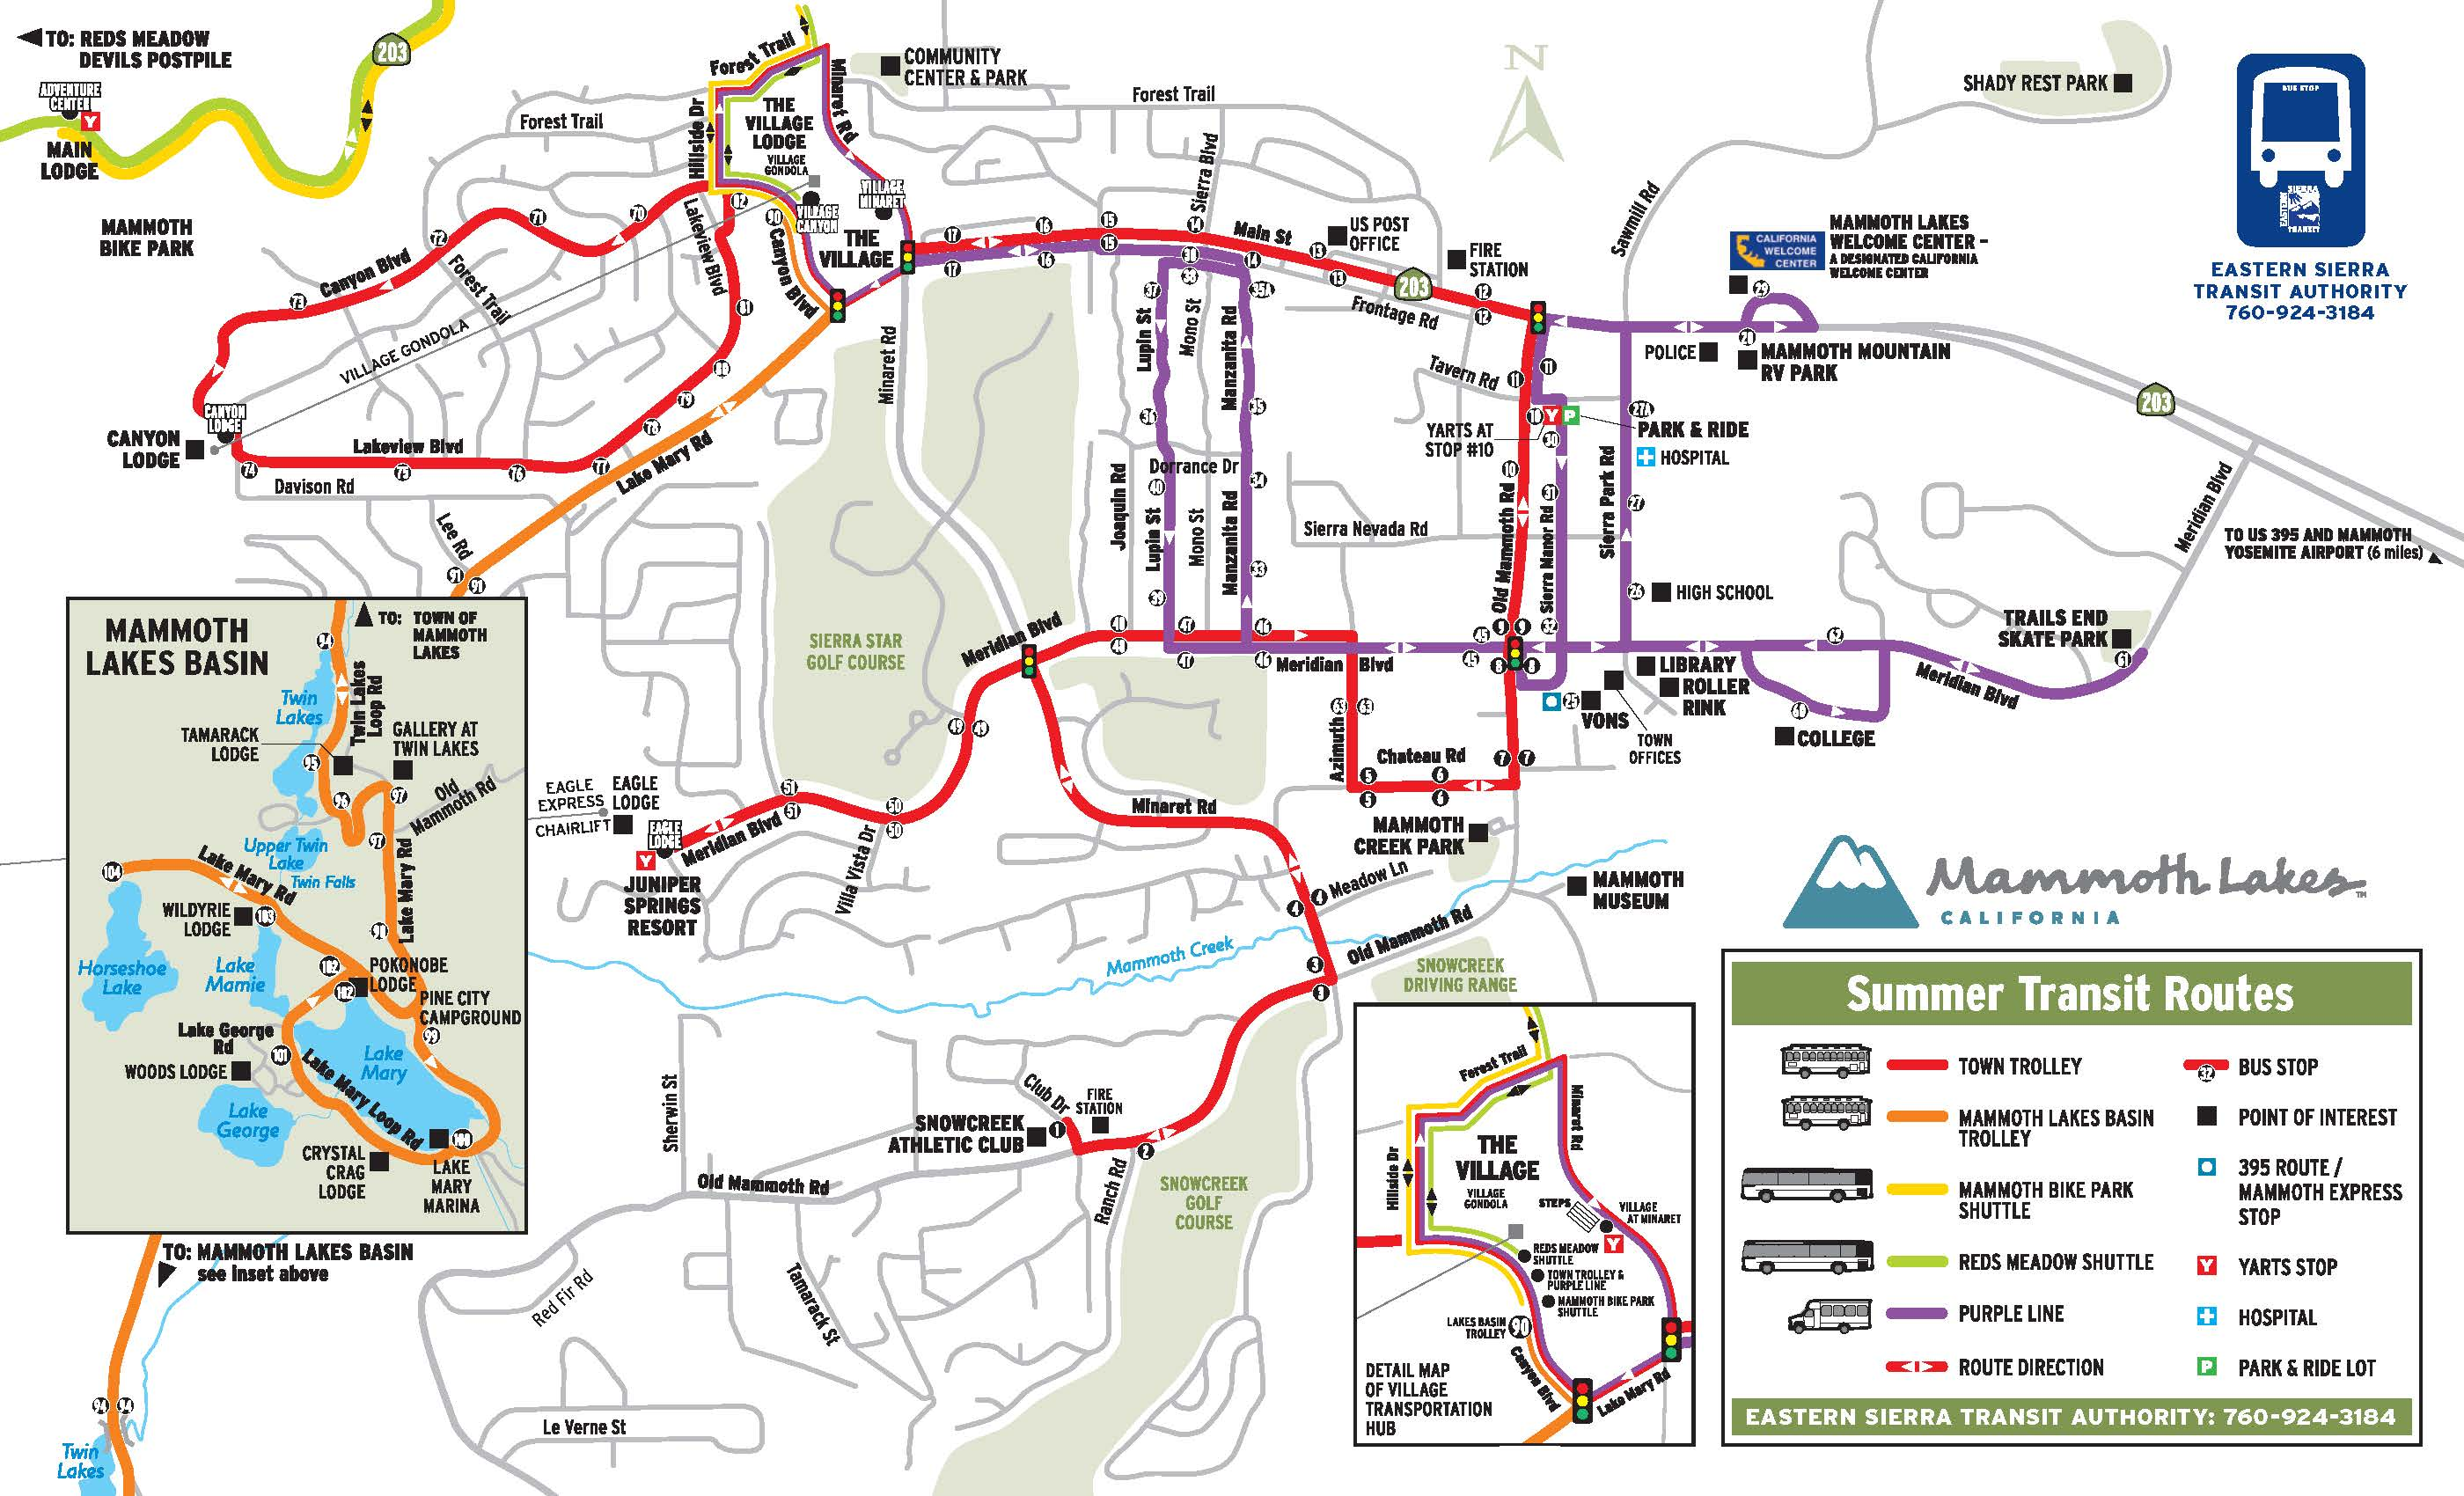 Free Mountain Shuttle Service See Routes Mammoth Mountain